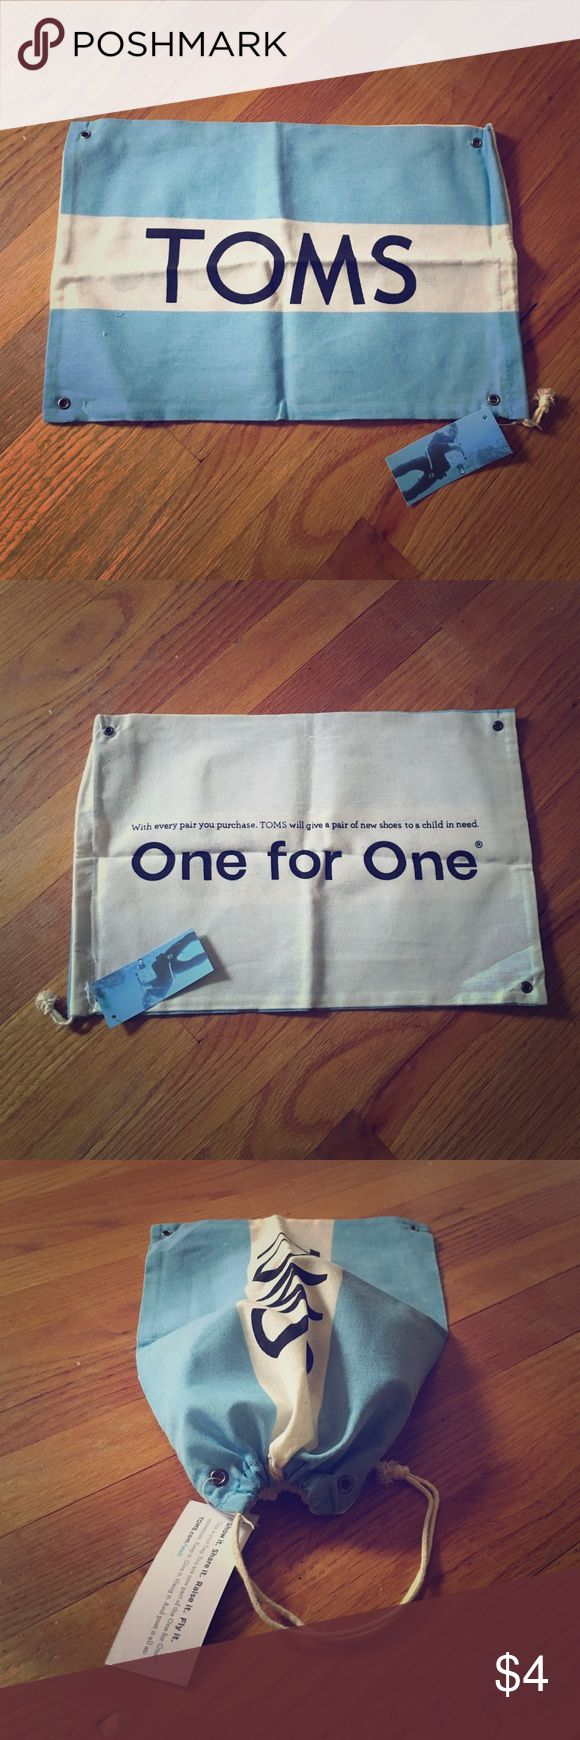 TOMS flag Flag that used to come with every pair of Toms shoes. I don't think they are available anymore! It also acts as a cinchable bag for the shoes or anything you'd want to put in it :) I have two. One has tags, while the other doesn't. The small one does not act as a bag. Bundle to save! All packaging material is recycled ♻️ TOMS Bags